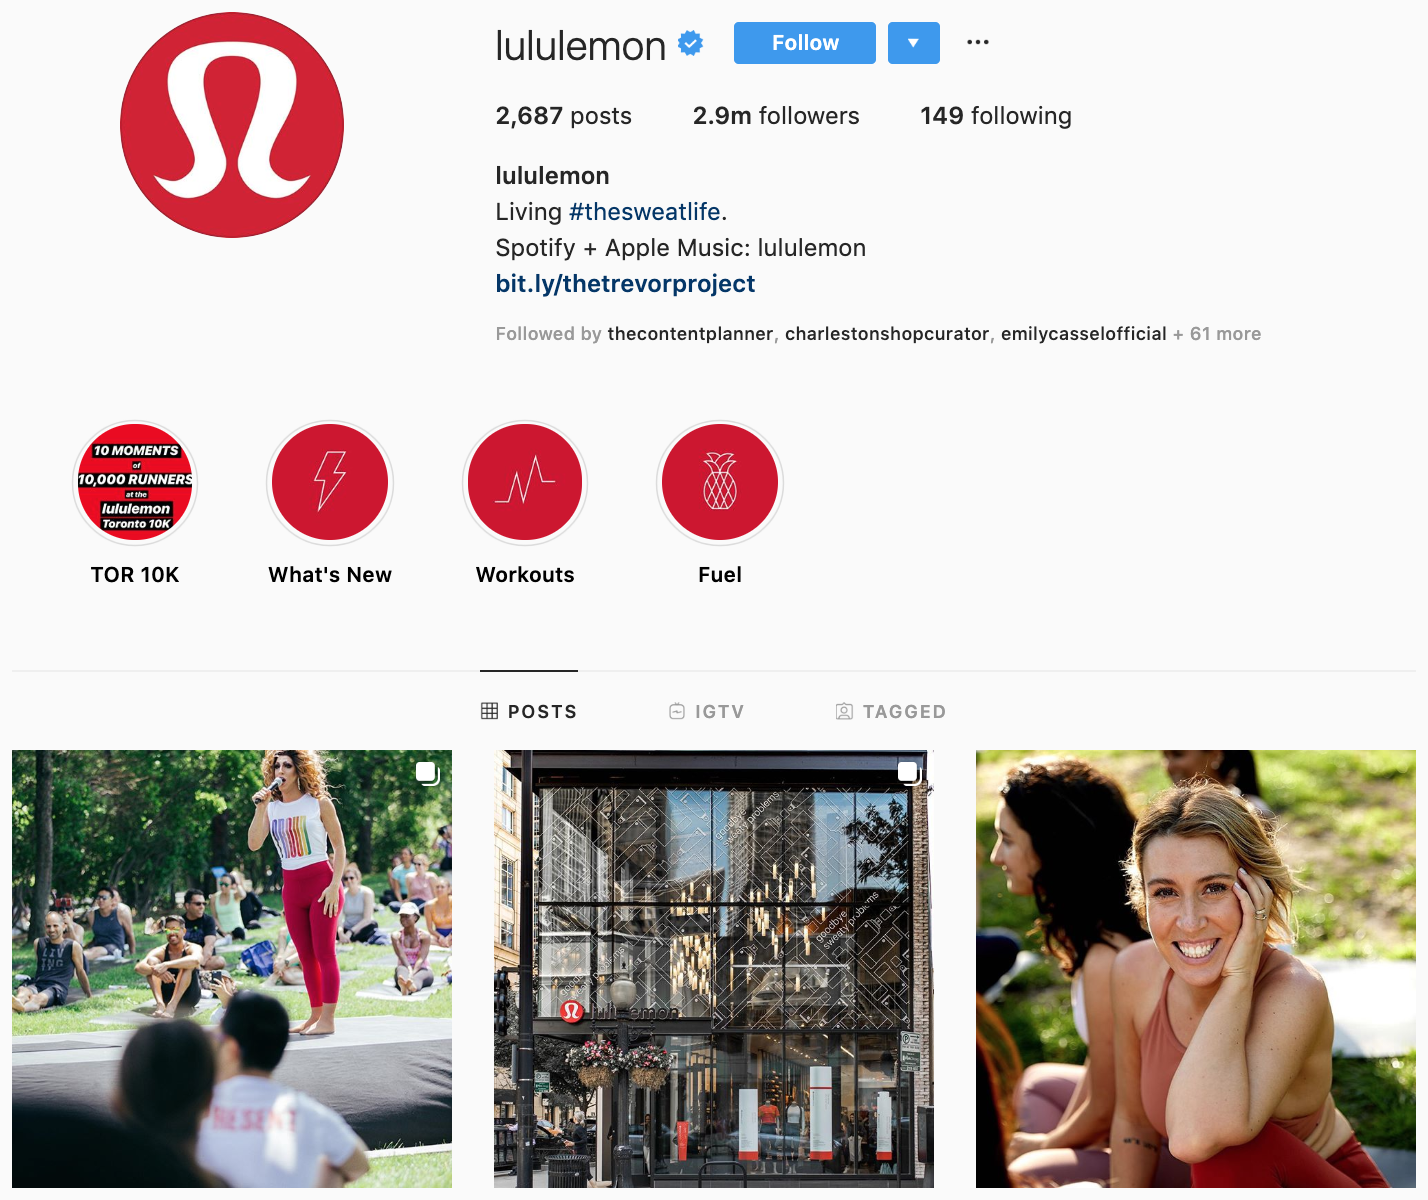 Lululemon on Instagram - best brands to follow